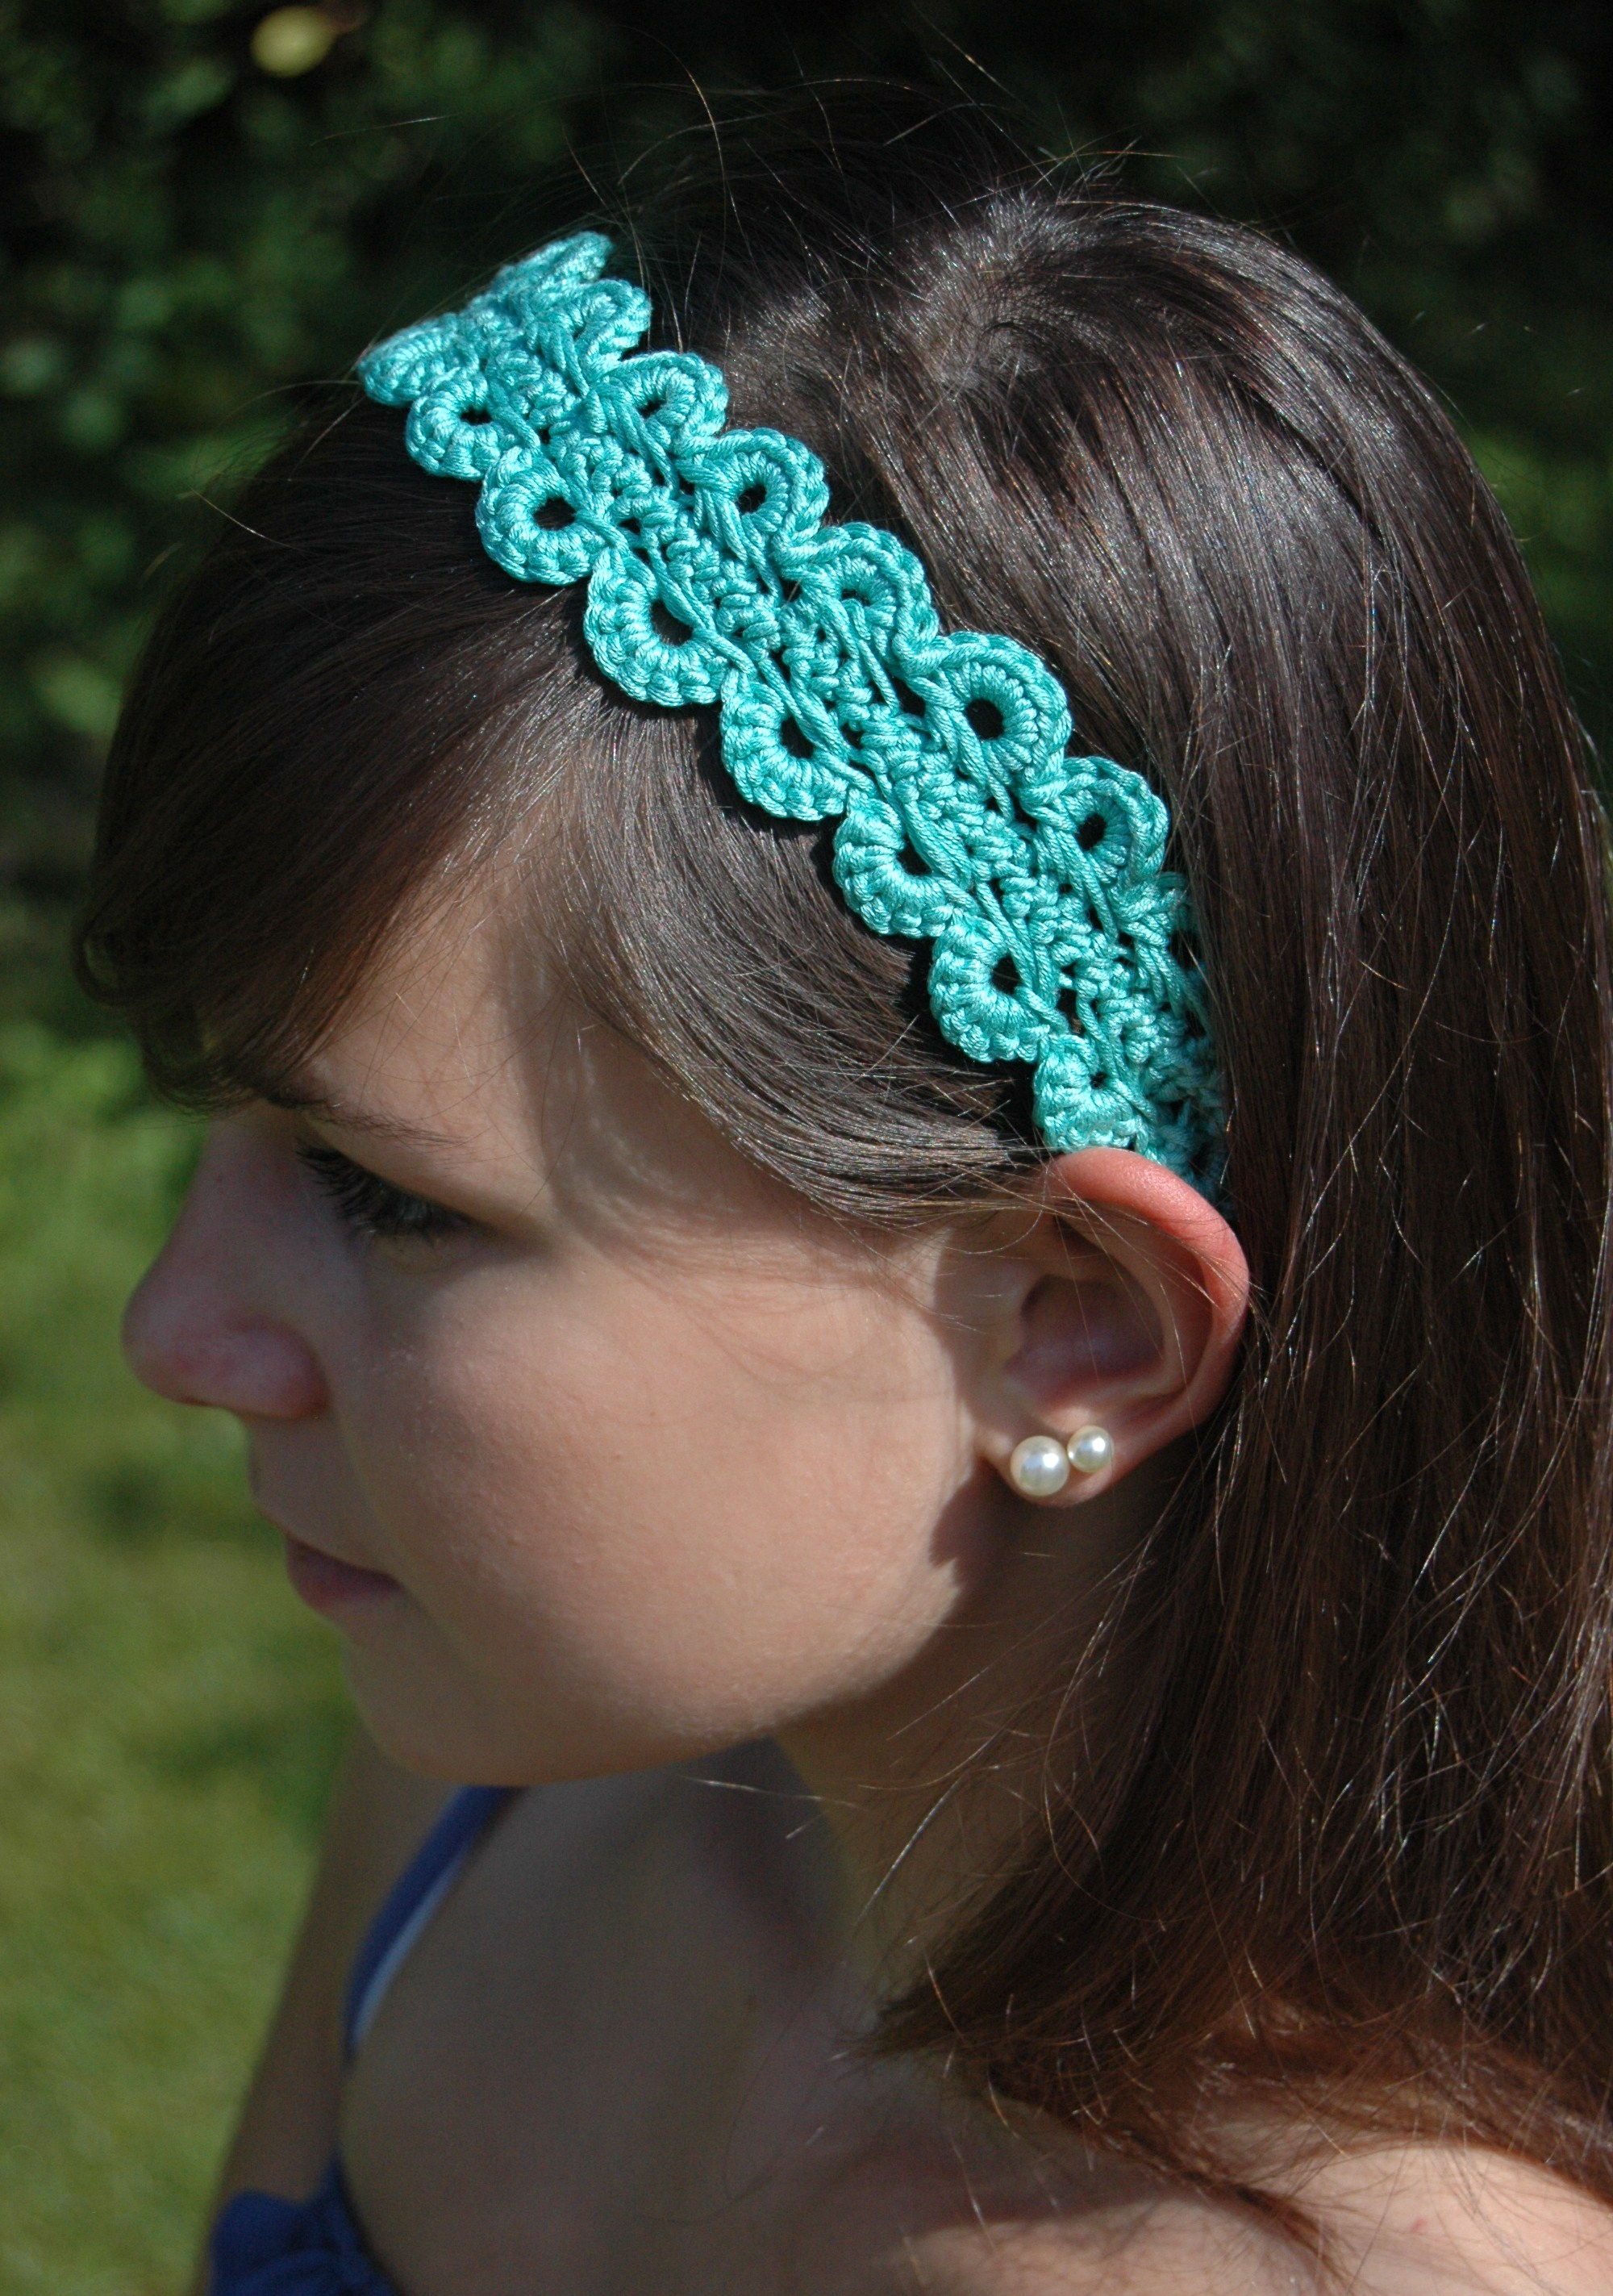 Crochet Patterns Hair : CROCHETED HEADBAND PATTERN FREE PATTERNS